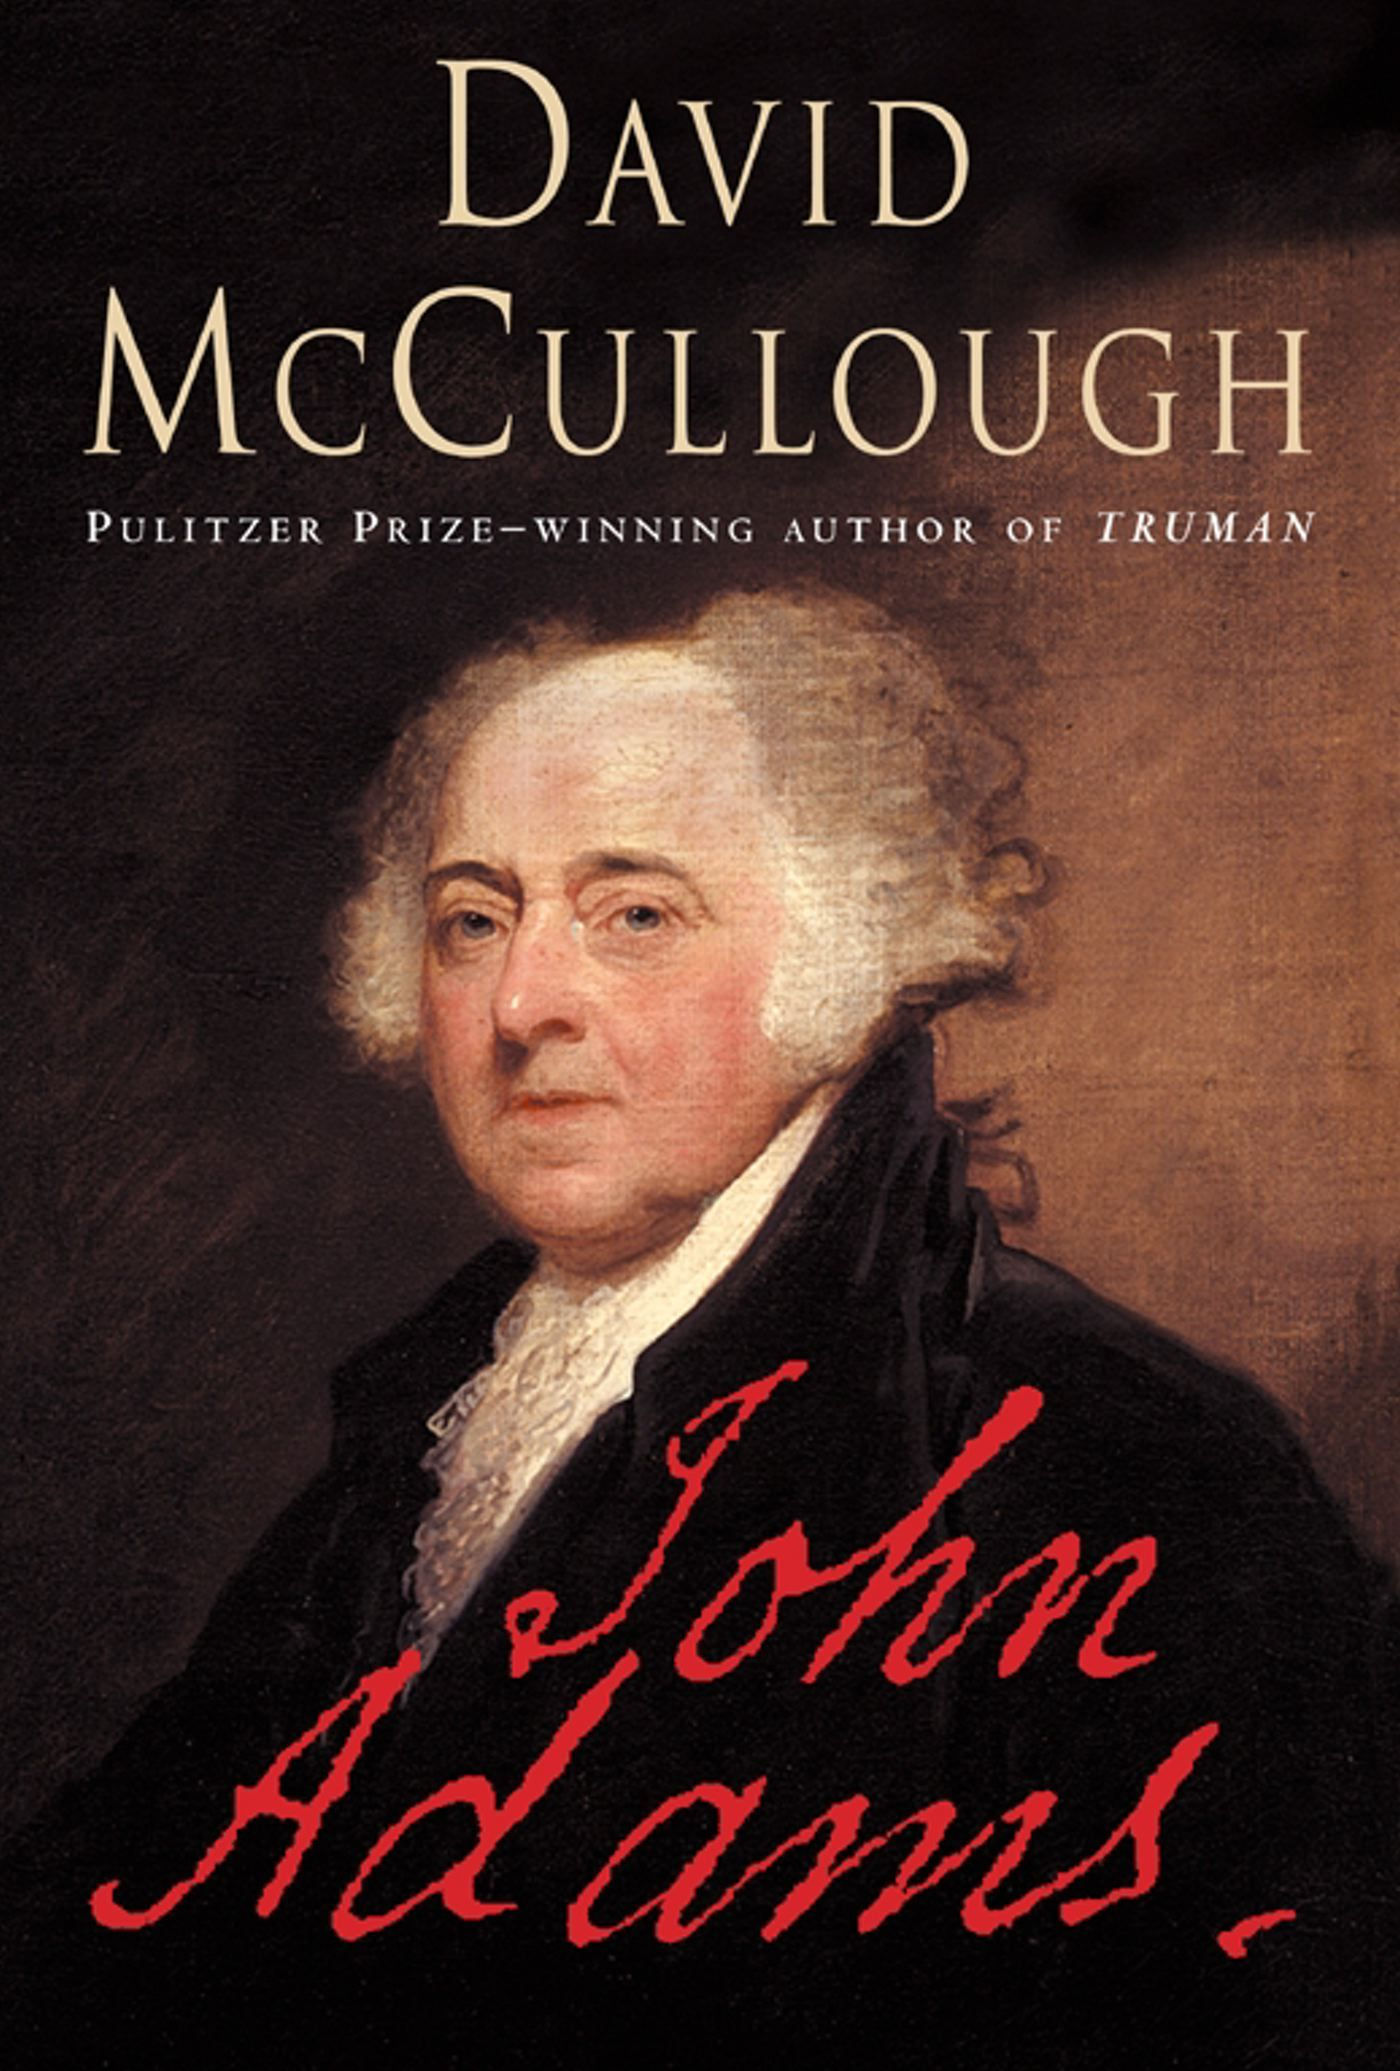 john adams by david mccullough John adams summary & study guide includes detailed chapter summaries and analysis, quotes, character descriptions, themes this detailed literature summary also contains topics for discussion and a free quiz on john adams by david mccullough.